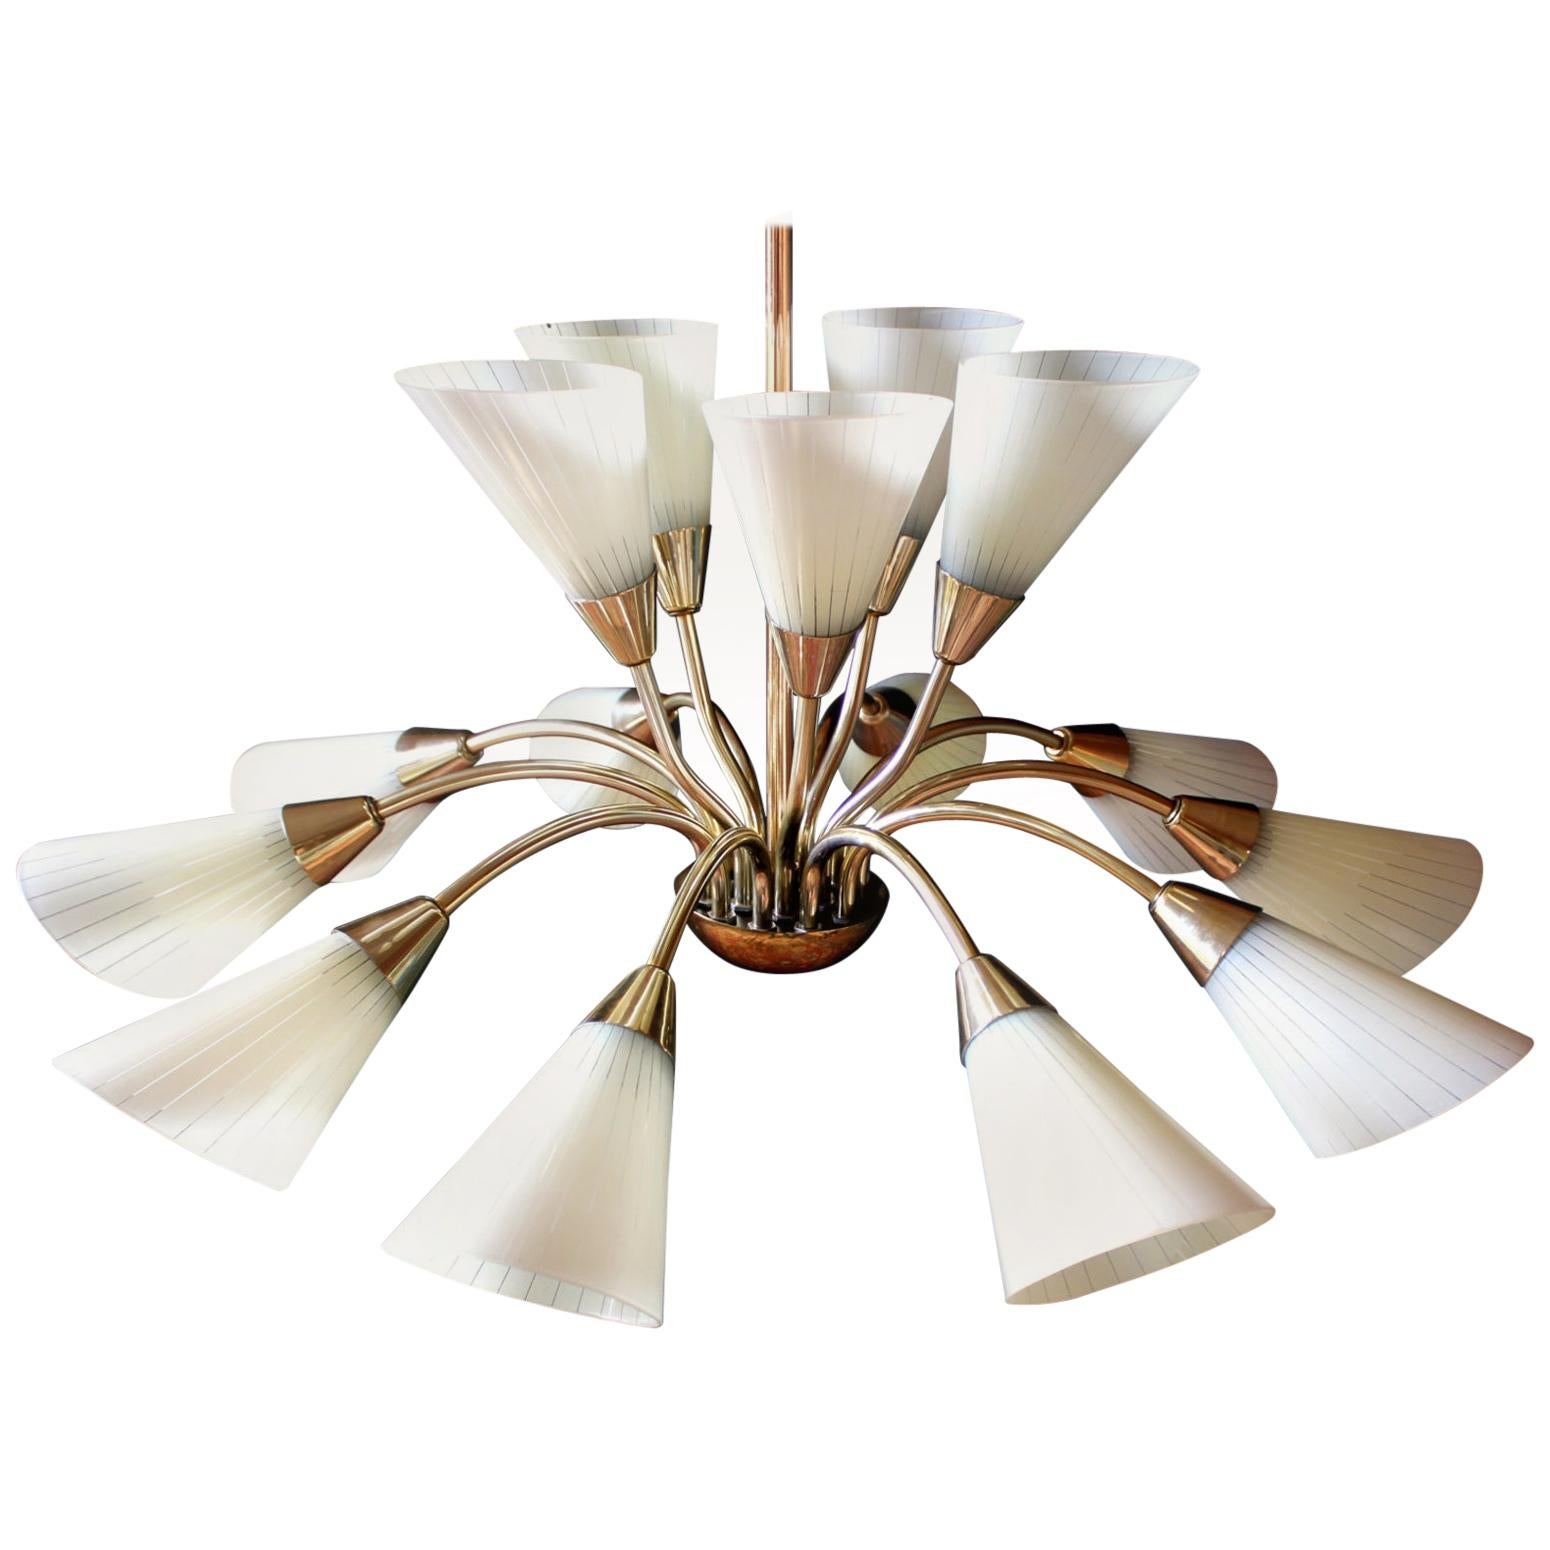 1 of 4 Brass and Glass Butterfly Chandeliers, Germany, 1950s